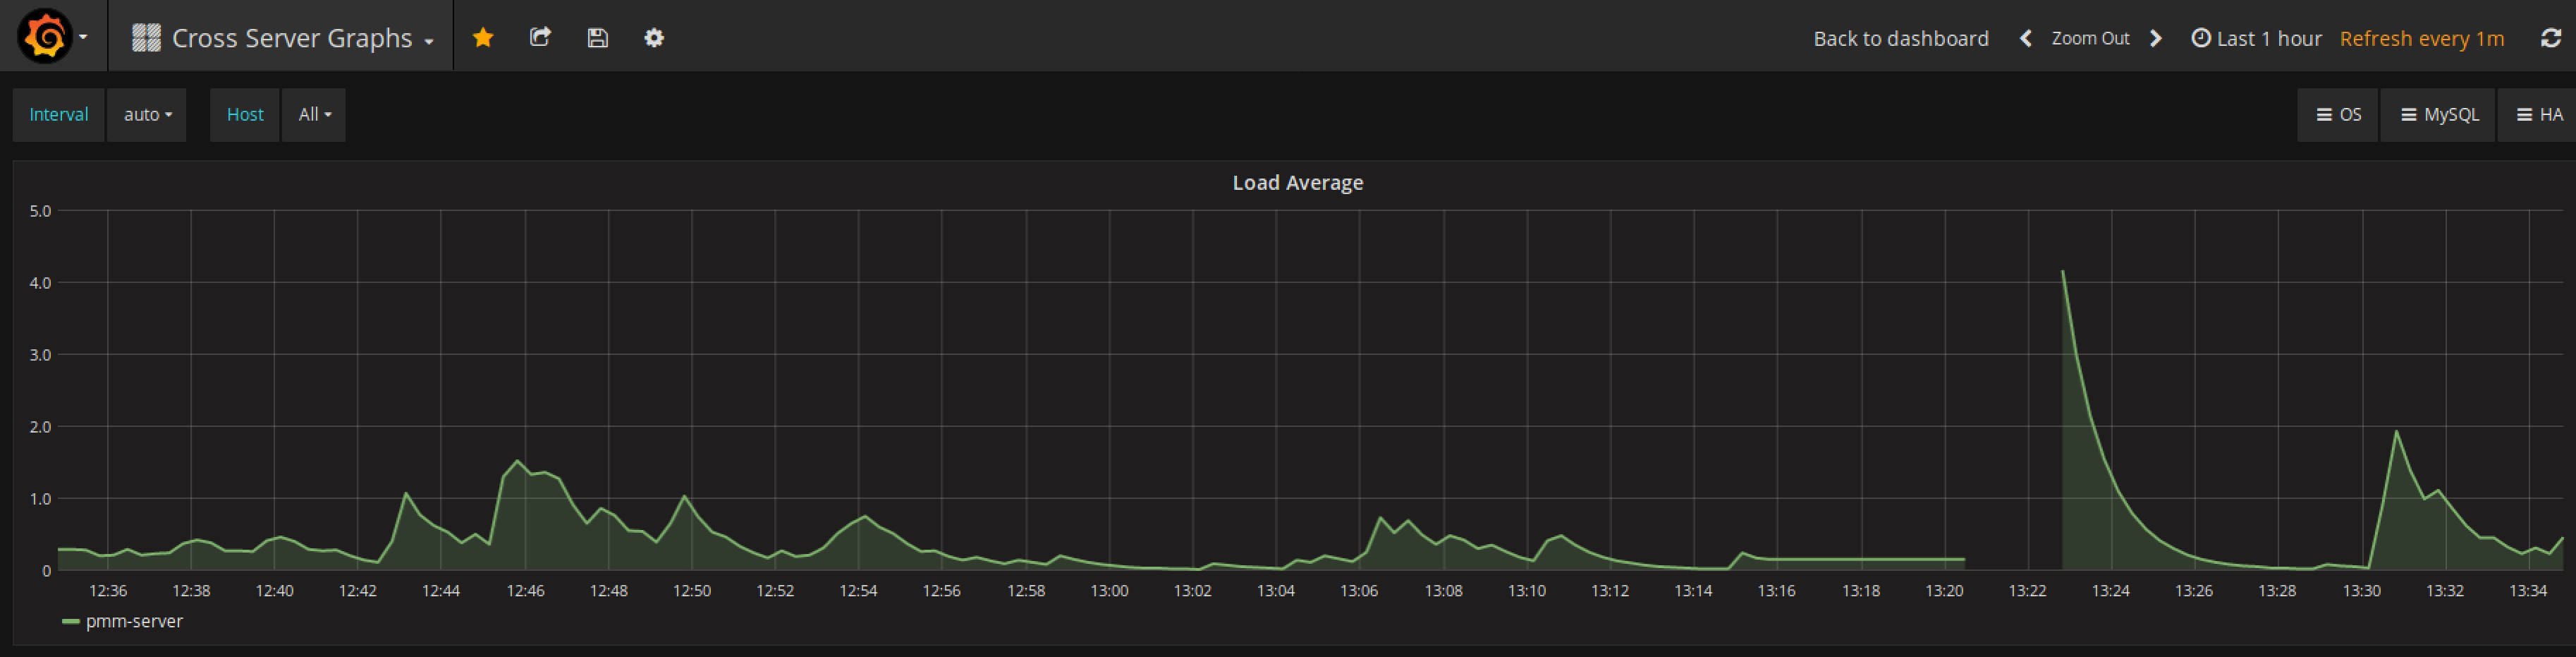 grafana_graph